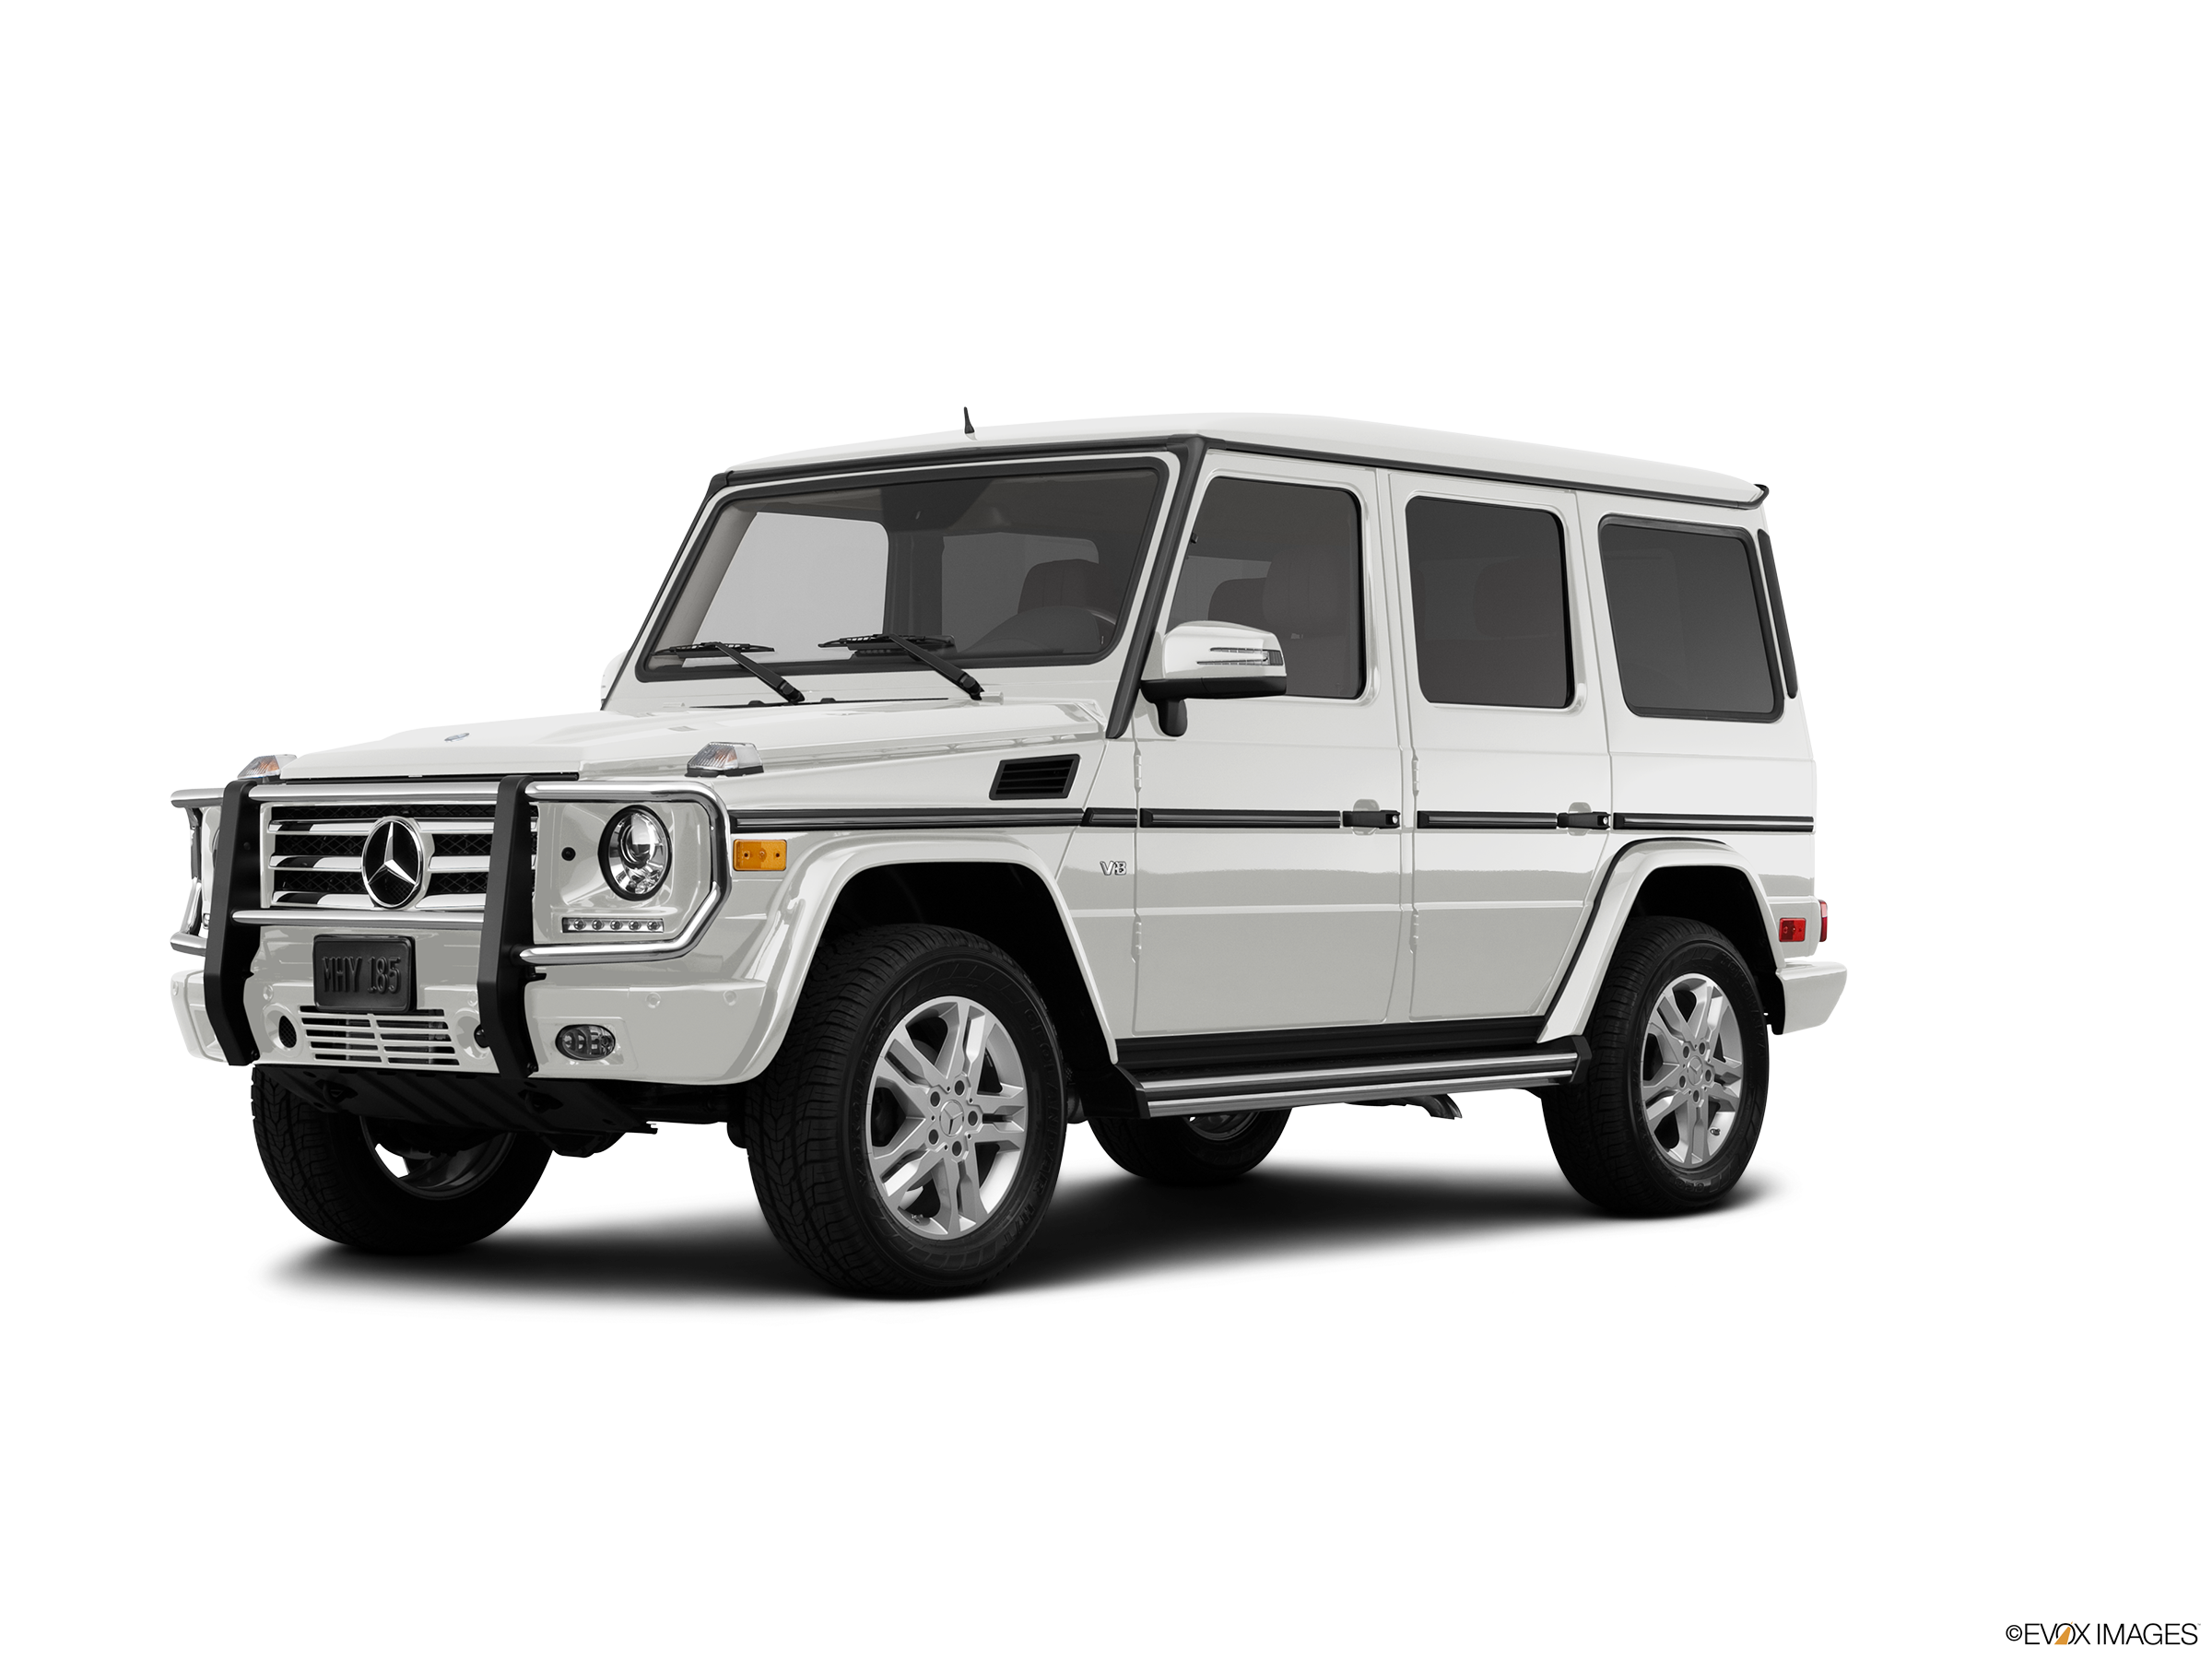 2013 Mercedes Benz G Class Values Cars For Sale Kelley Blue Book